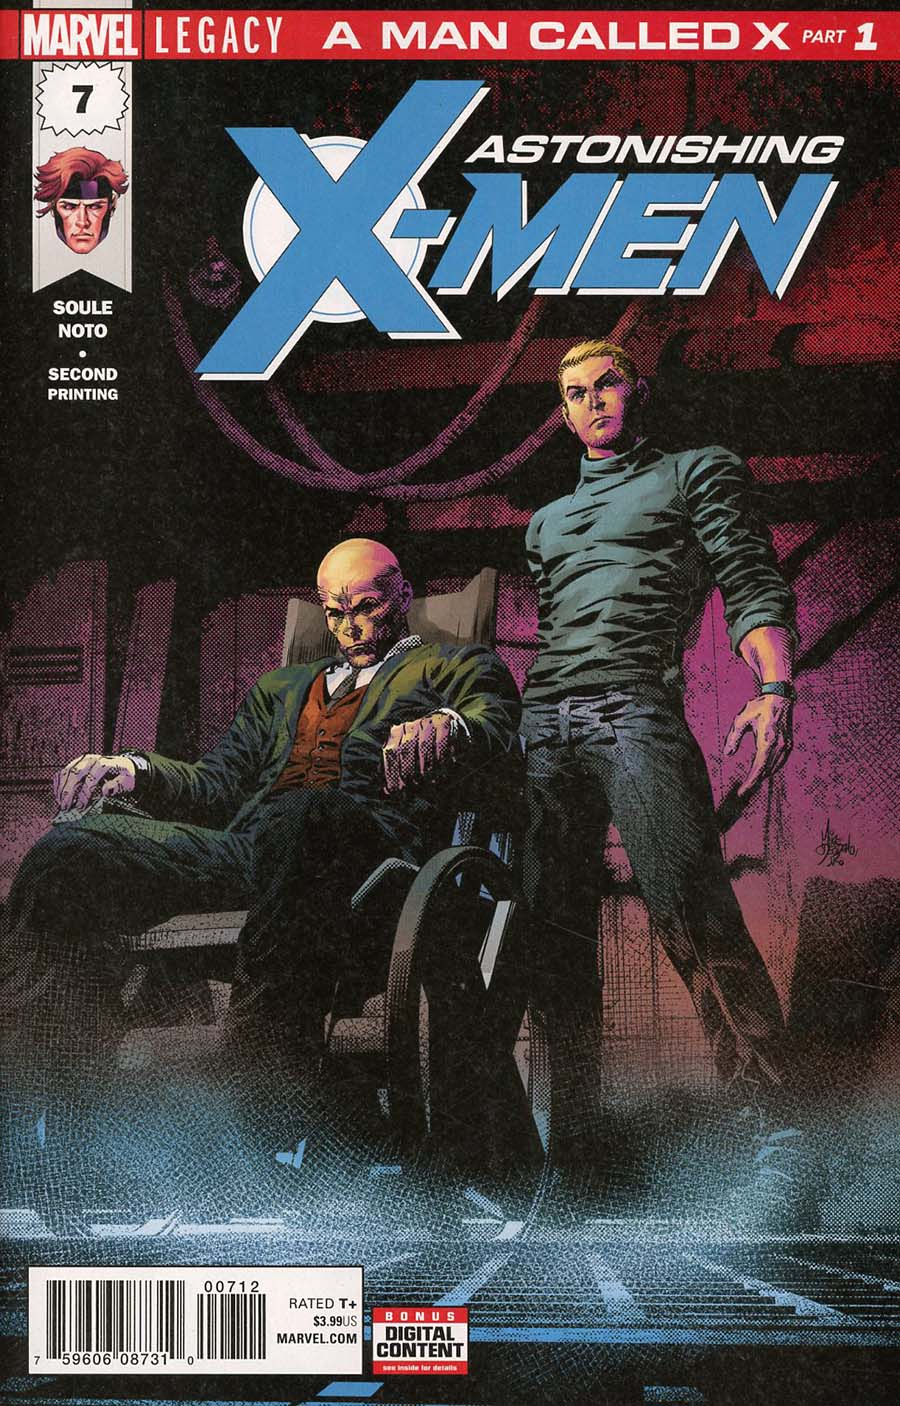 Astonishing X-Men Vol 4 #7 Cover I 2nd Ptg Variant Mike Deodato Jr Cover (Marvel Legacy Tie-In)